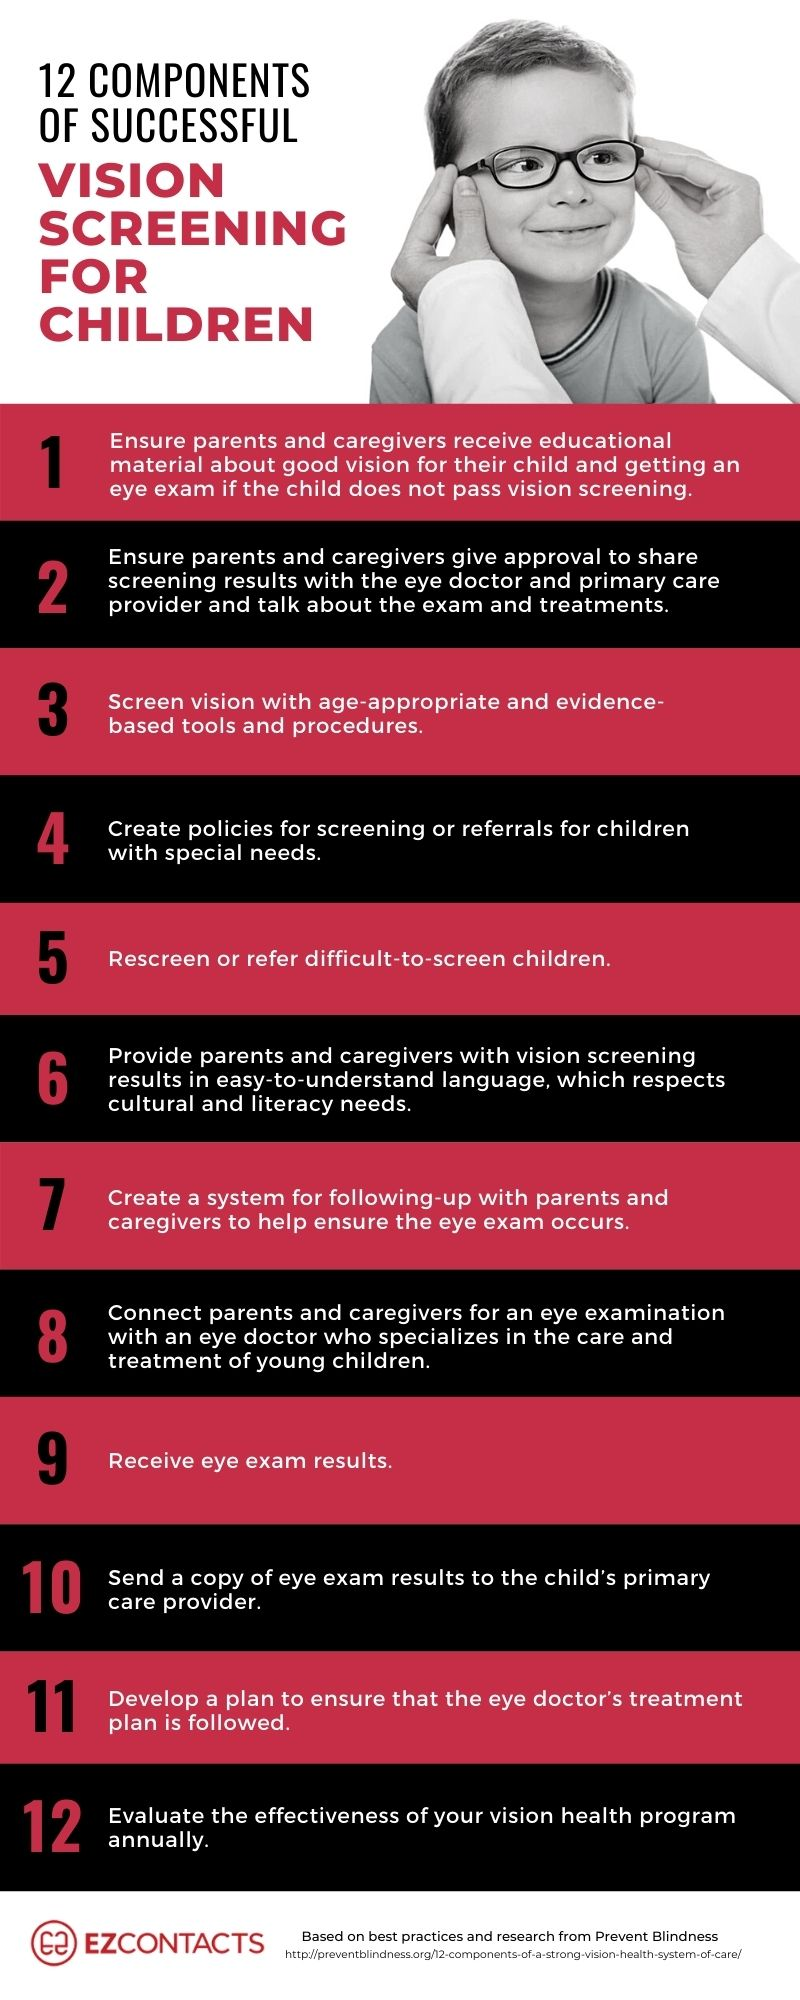 vision screening for children recommendations - infographic